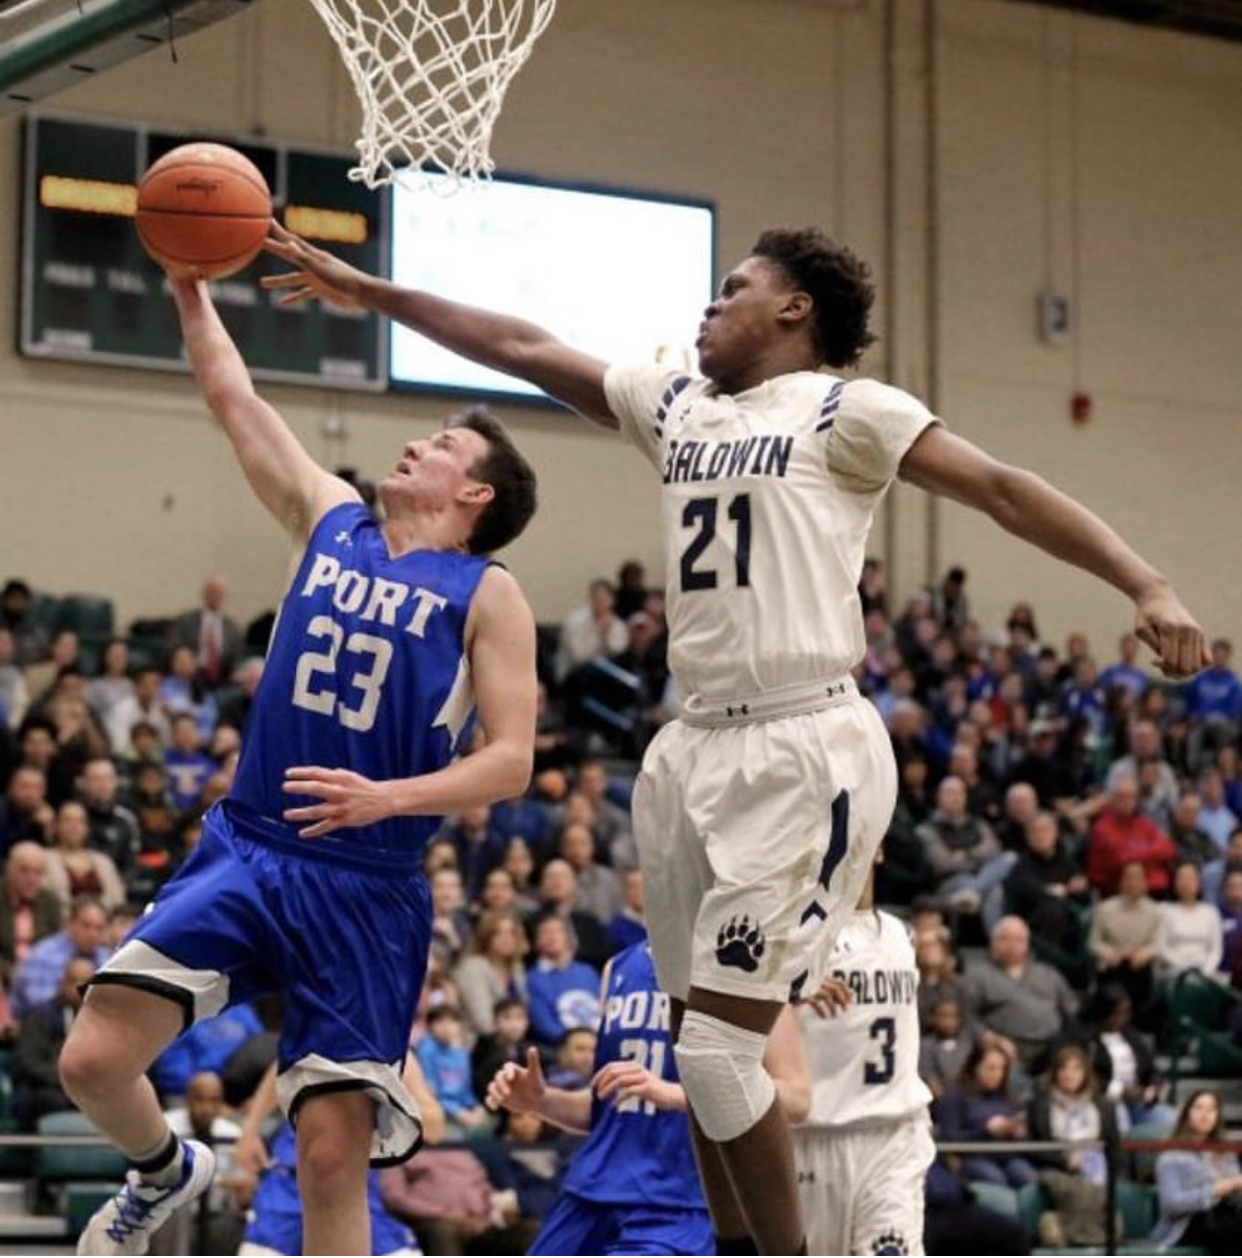 Senior Marc Daly goes up for a lay-up in the county semifinals on Feb. 26 against Baldwin. The boys won by a score of 45-39.